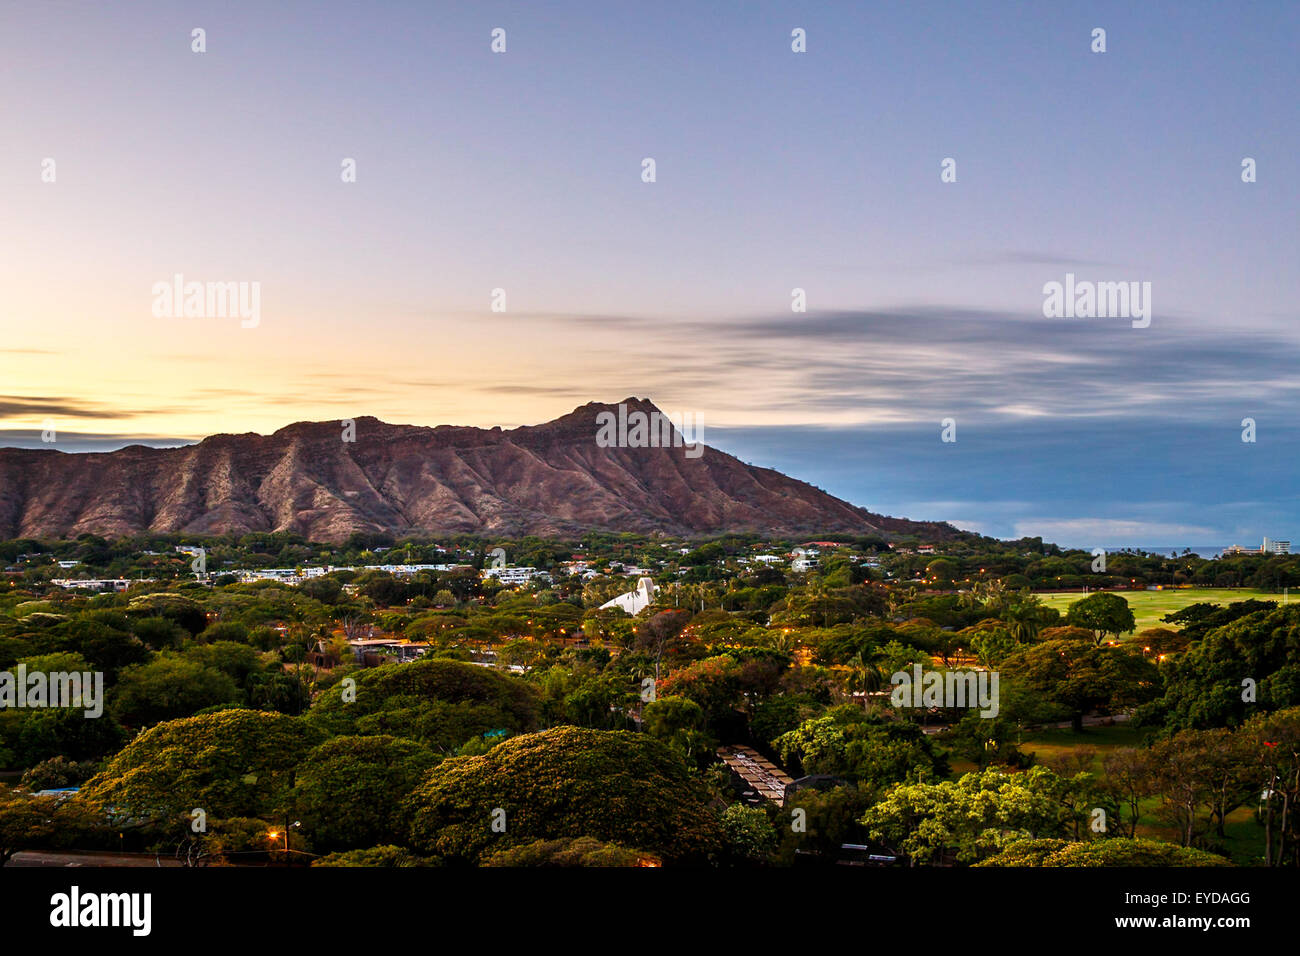 Diamond Head State Monument in Oahu, Hawaii - Stock Image